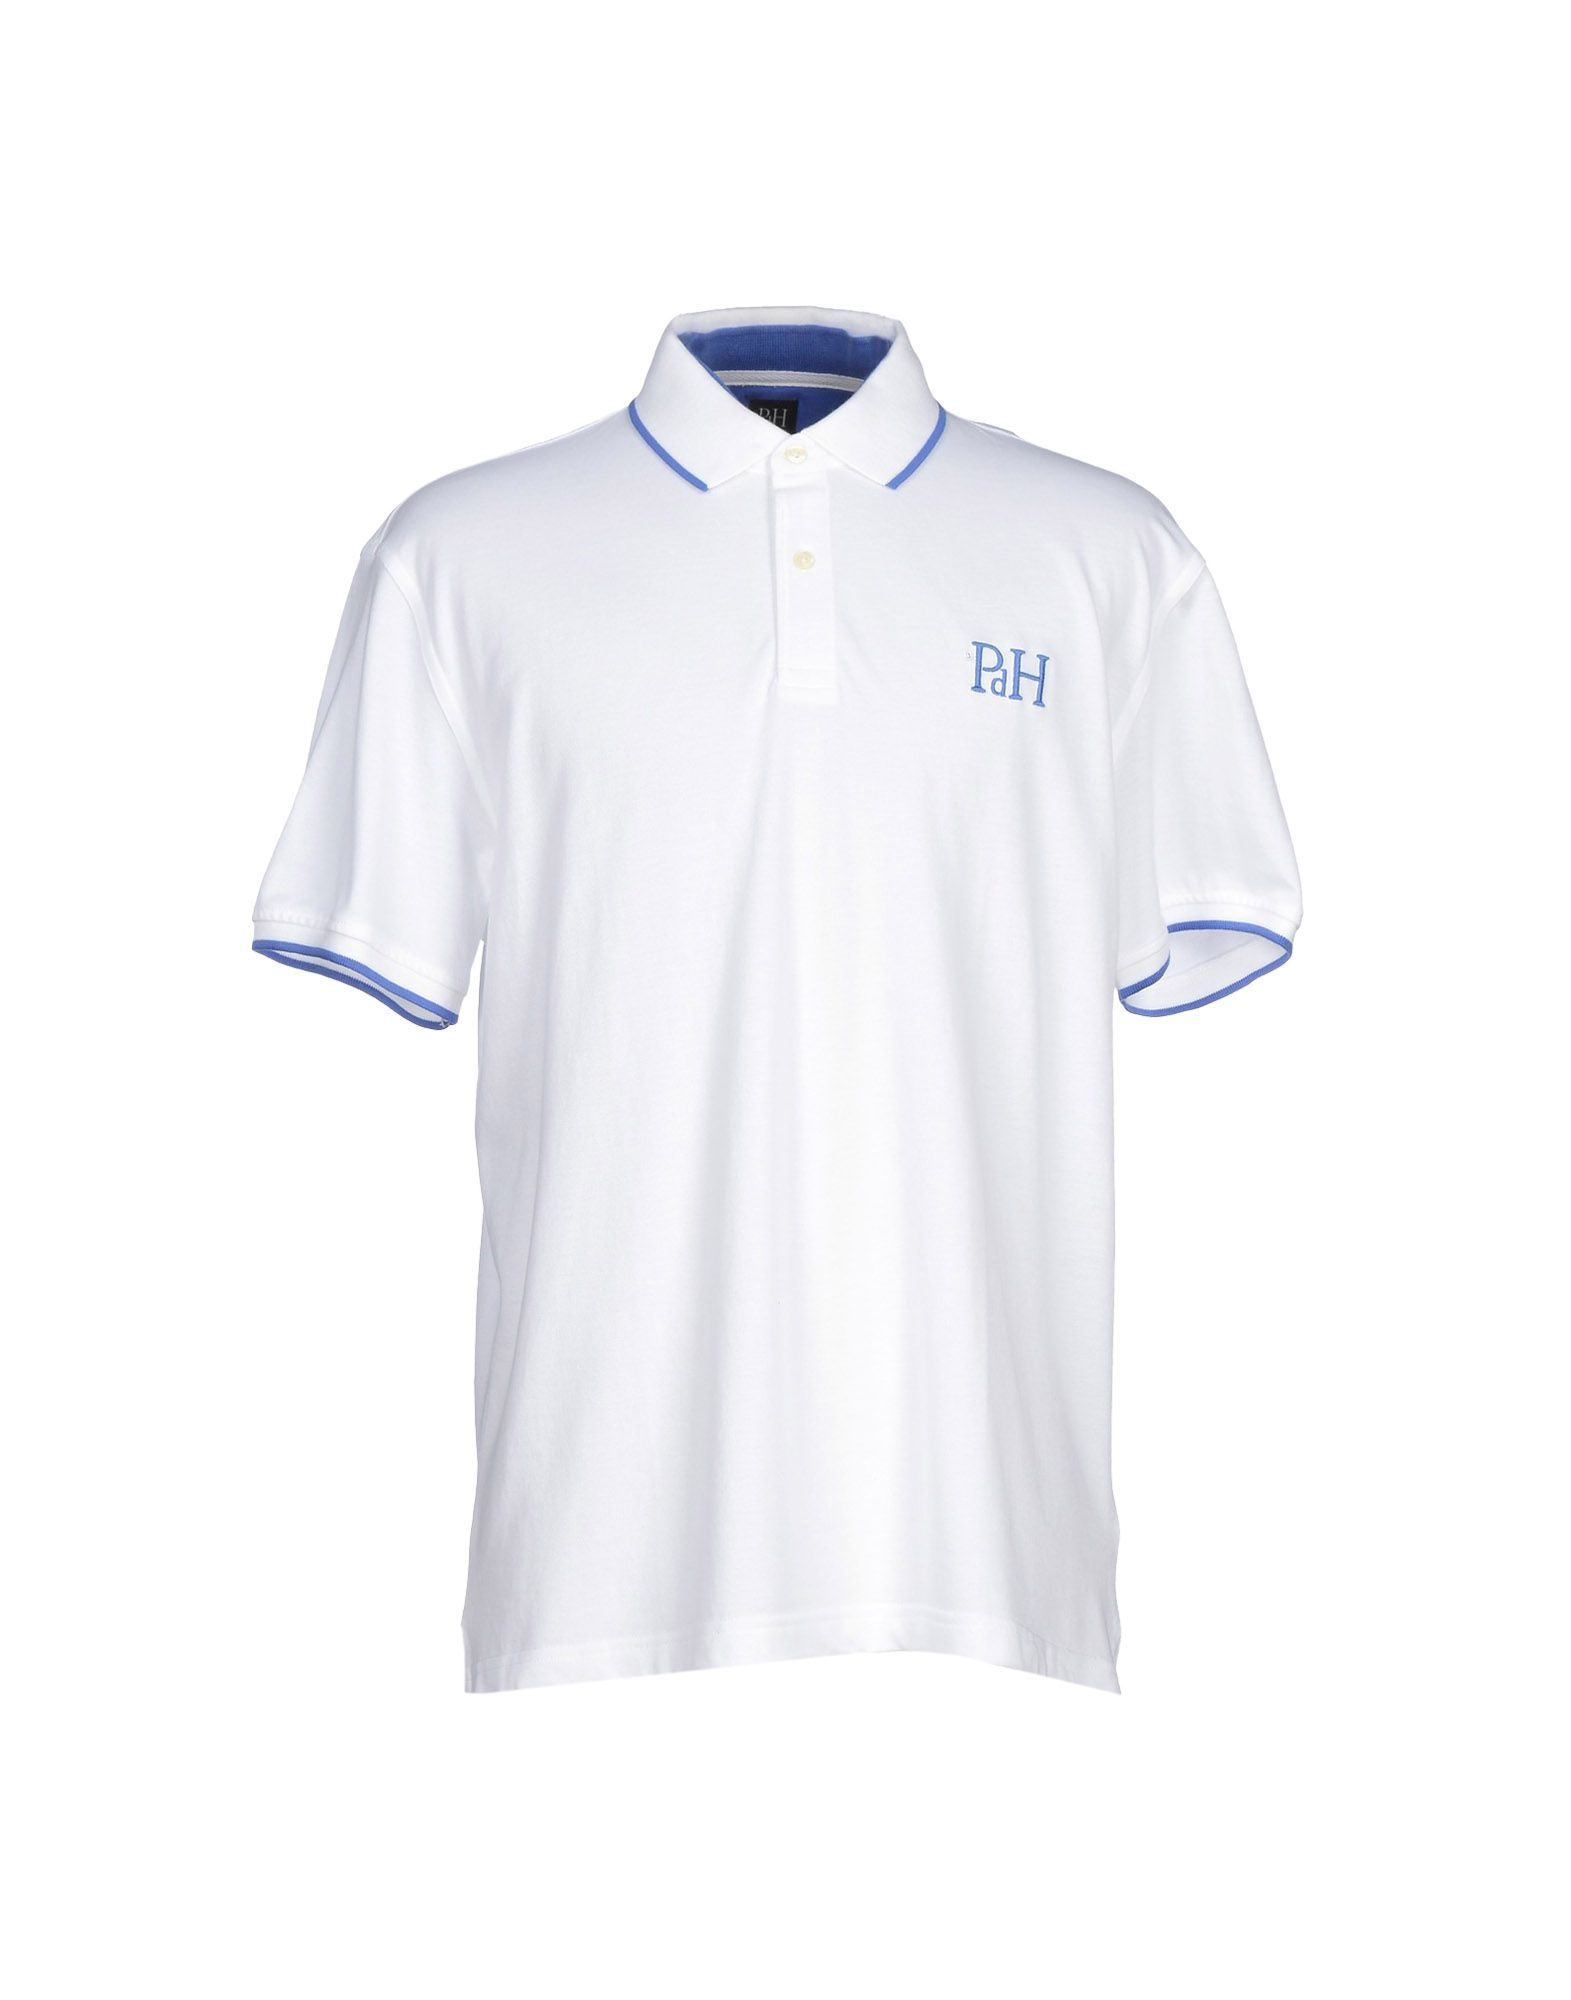 Sast SHIRTS - Shirts Pedro del Hierro Free Shipping Visa Payment Clearance Explore Clearance Low Shipping Fee HNXEf4pwVD